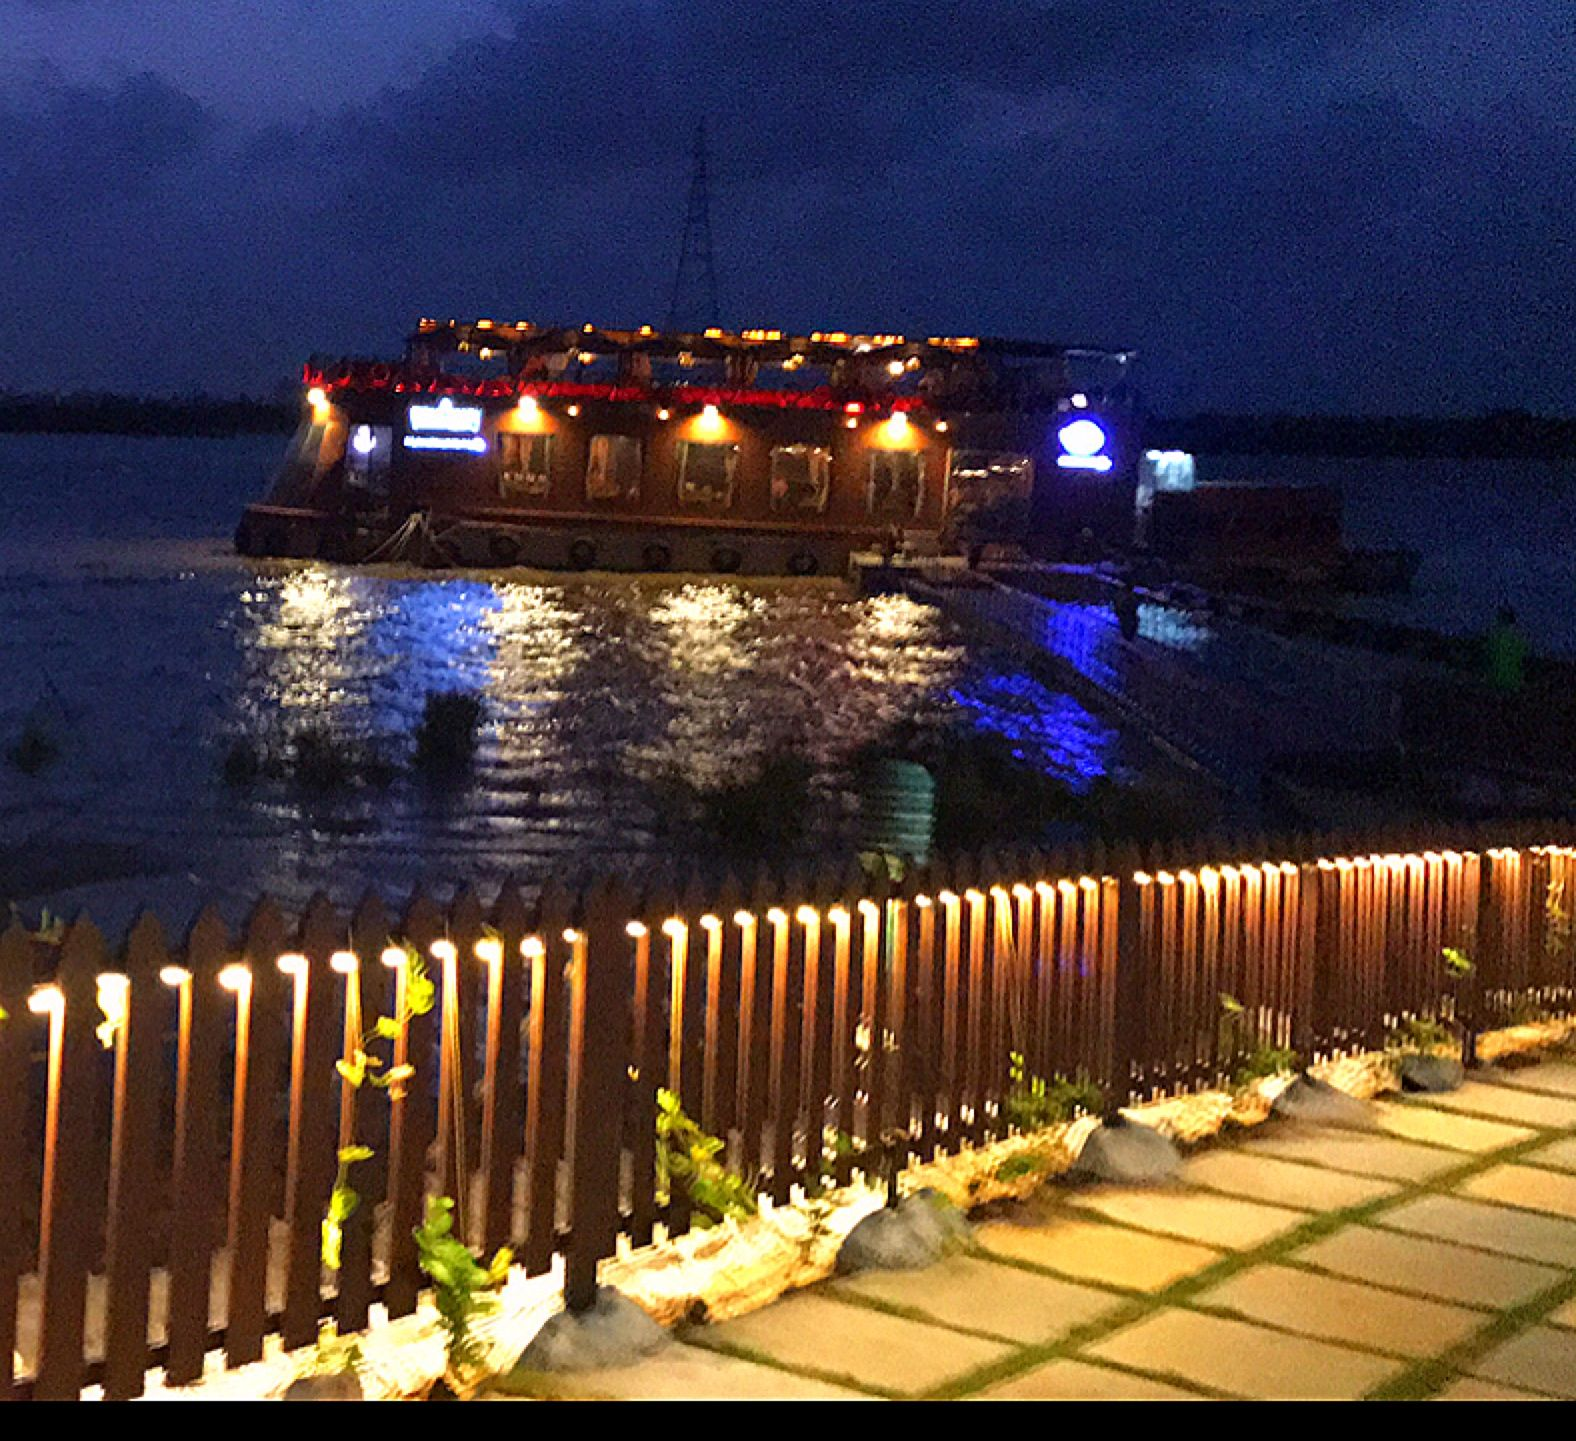 The Floating Restaurant Pirates Voyage First Ship Restaurant in Surat Gujarat semarang wisatasemarang semarangkota seputarsemarang pikniks…